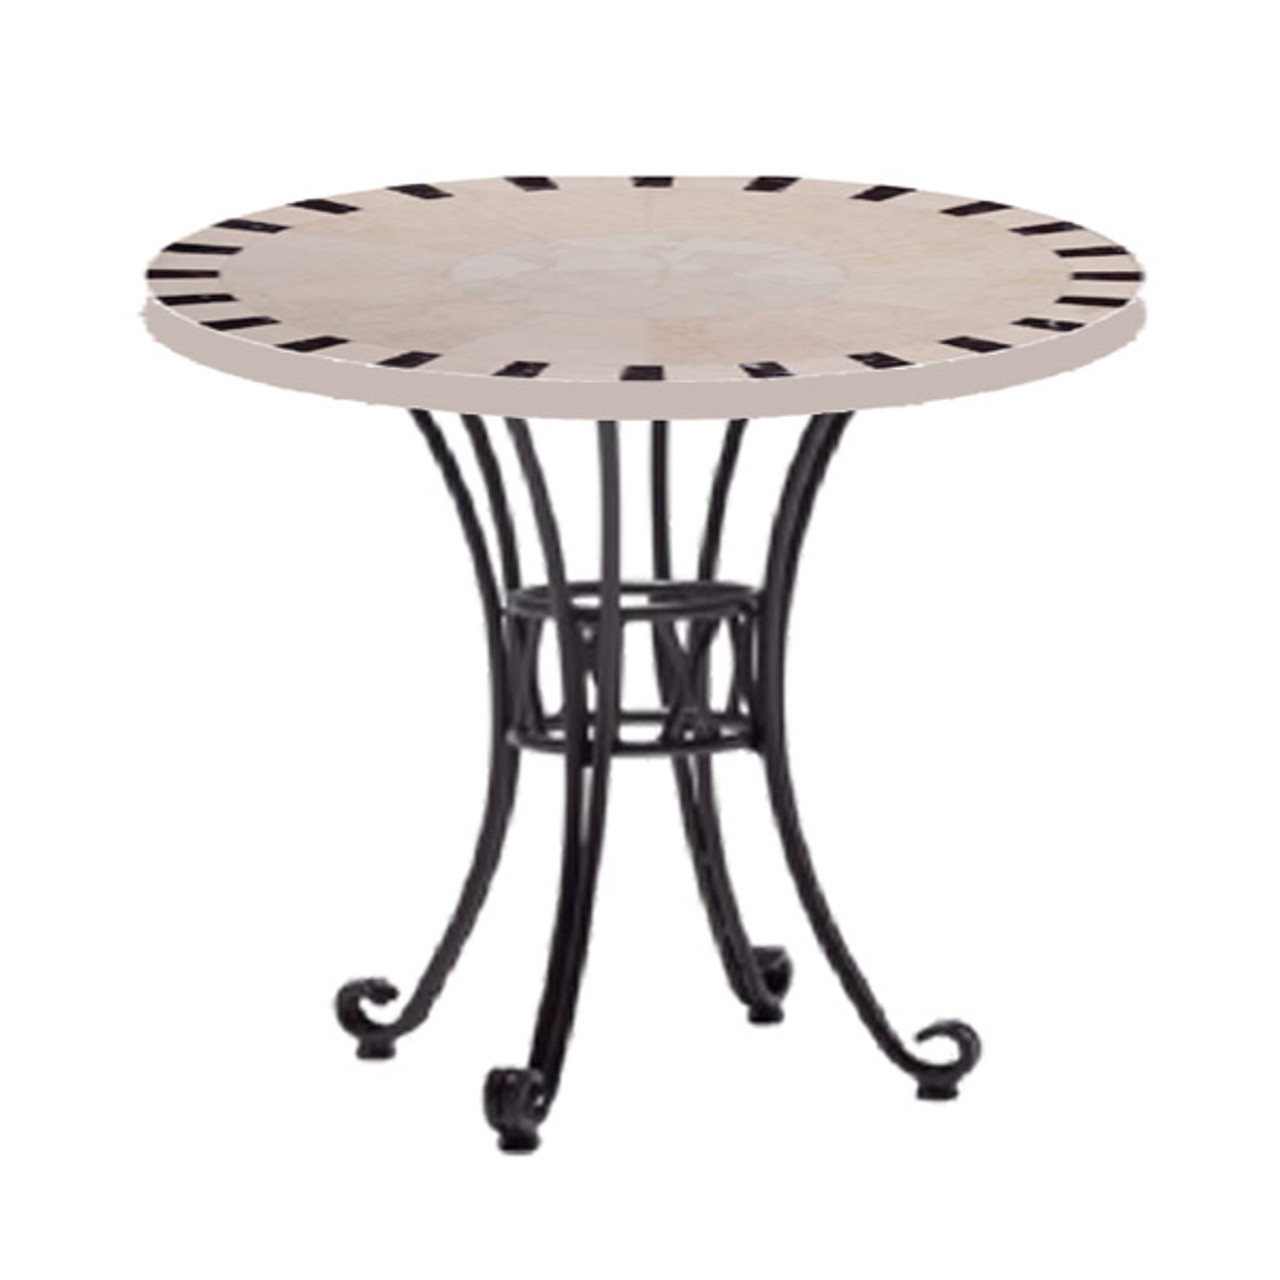 Pohara II 60cm Ceramic Round Table